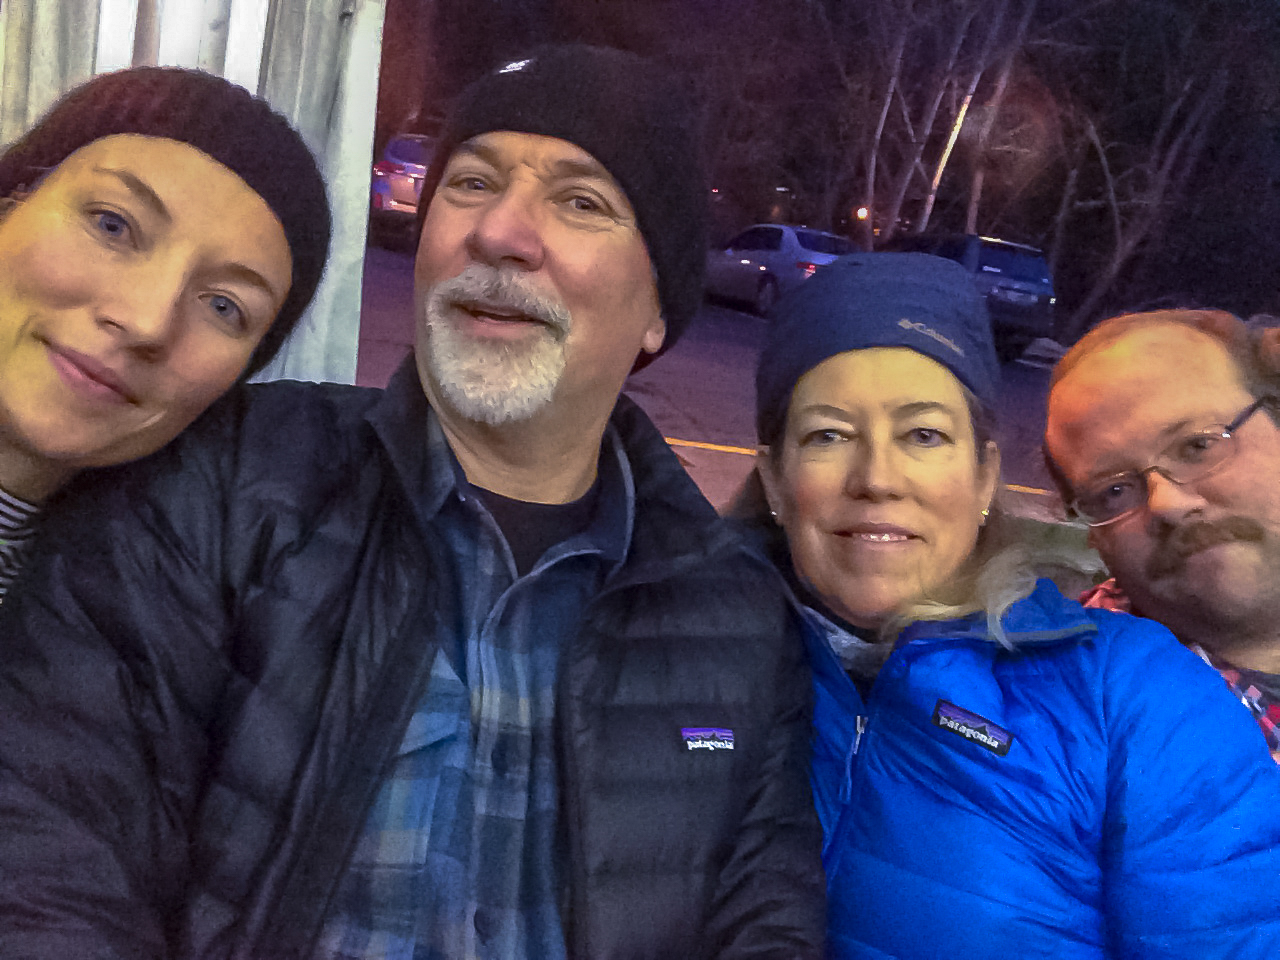 Family selfie while ice skating in Lithia Park.